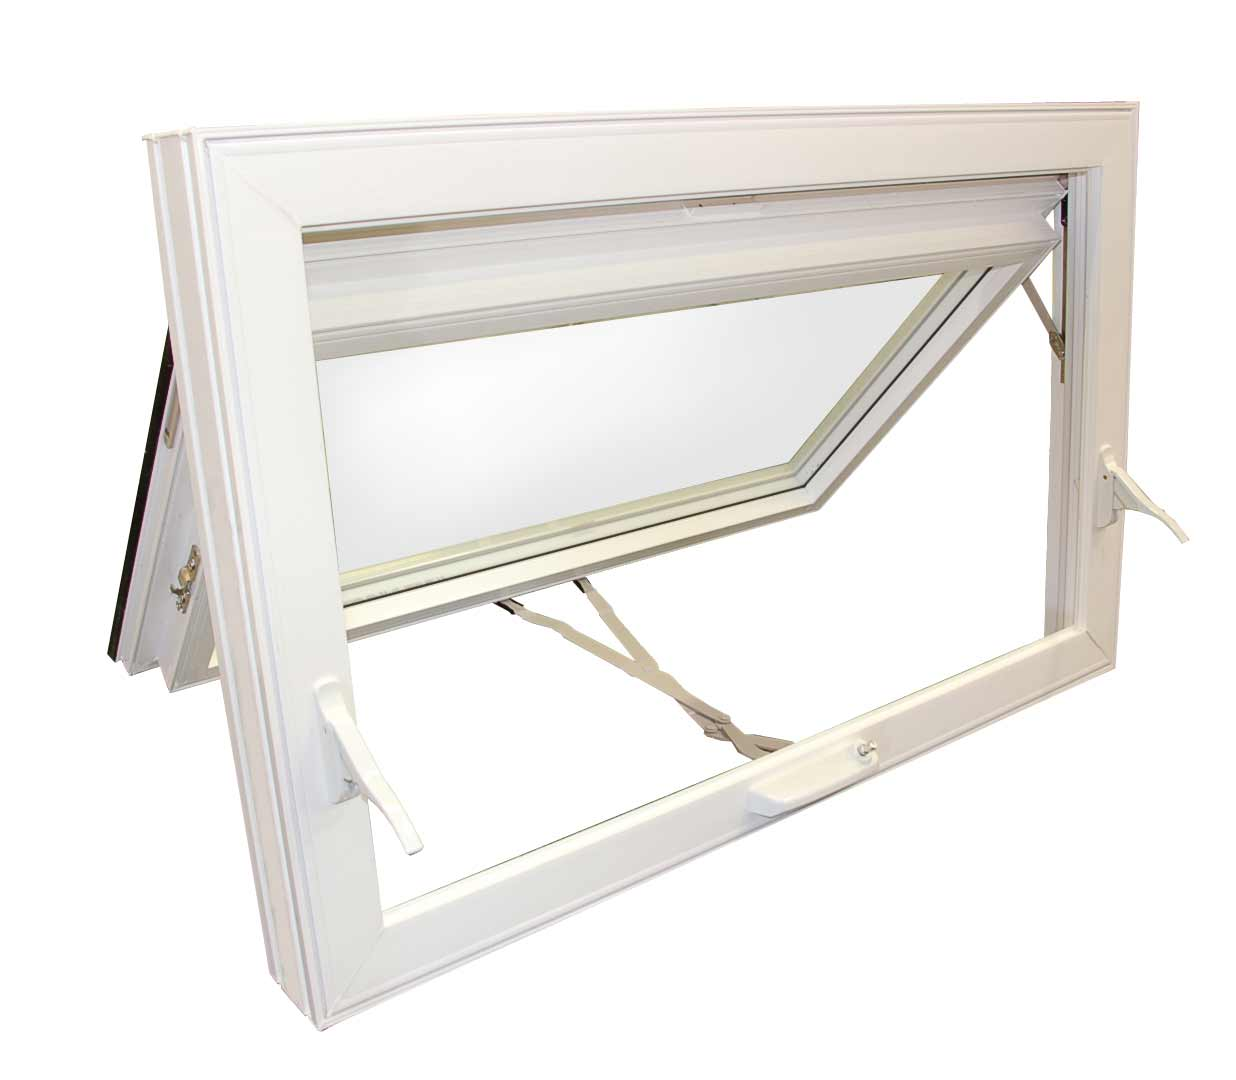 Aluminum hopper windows feel the home for Awning replacement windows